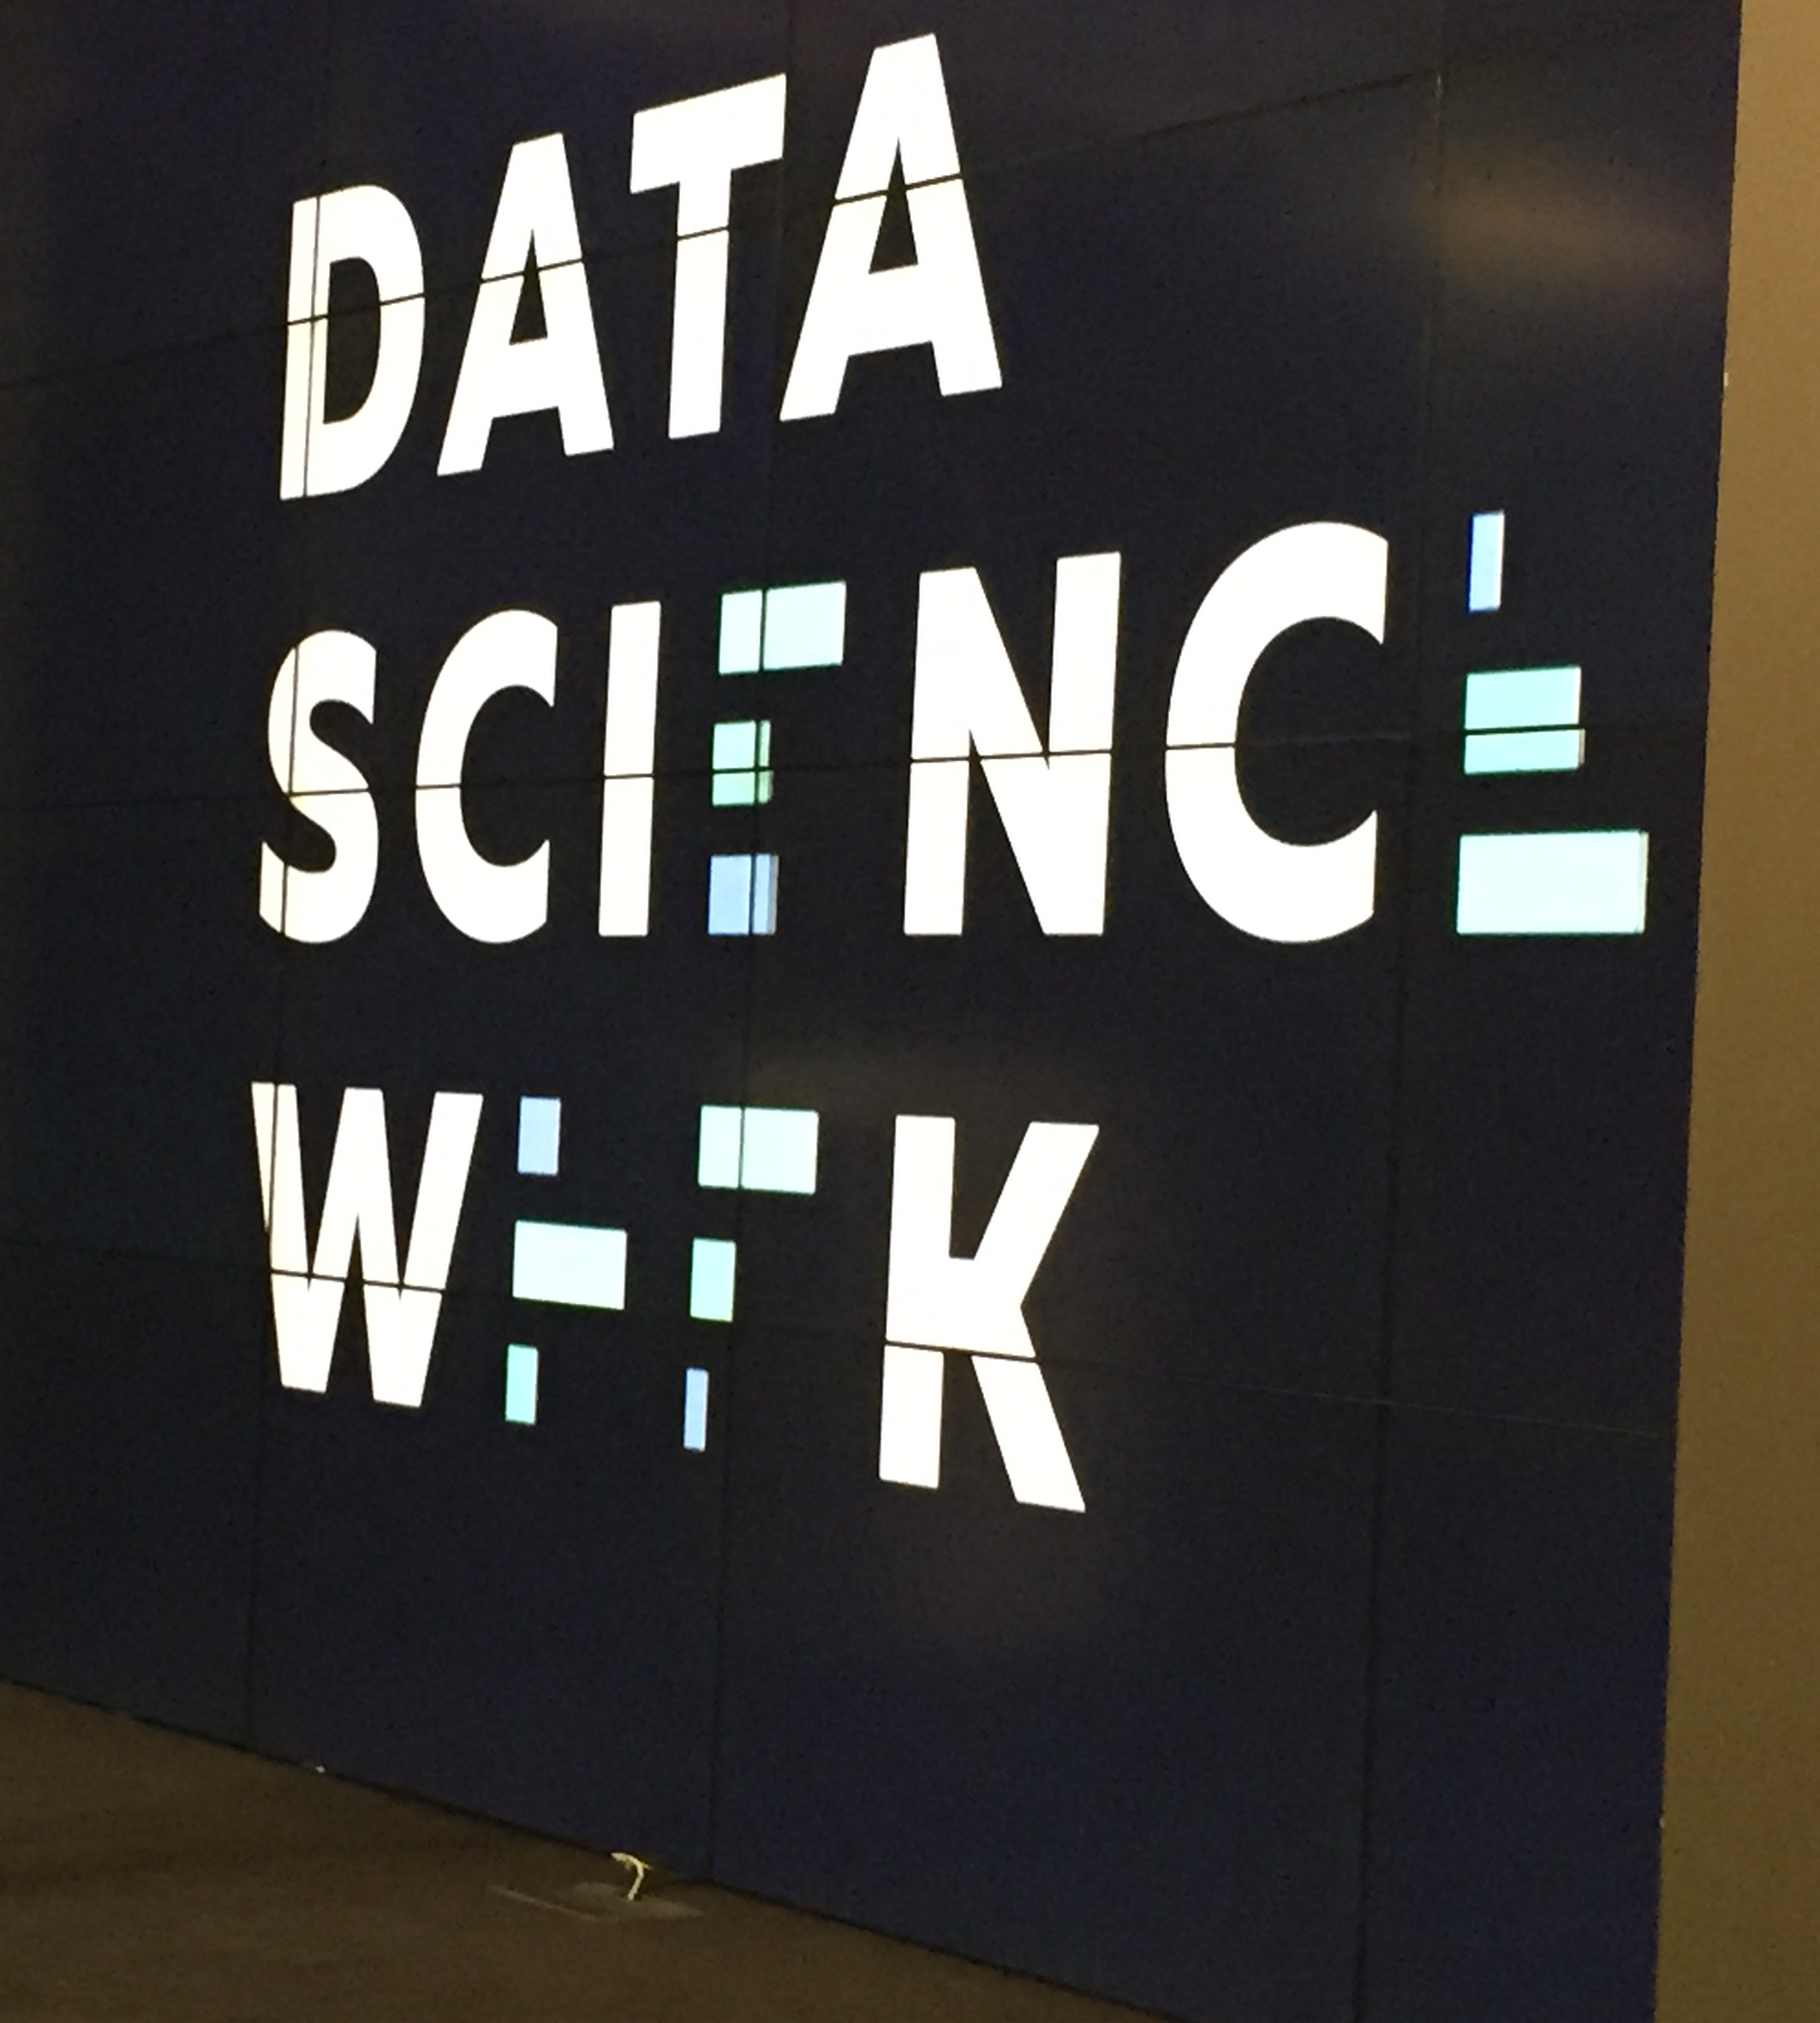 Data Science Week - 2015